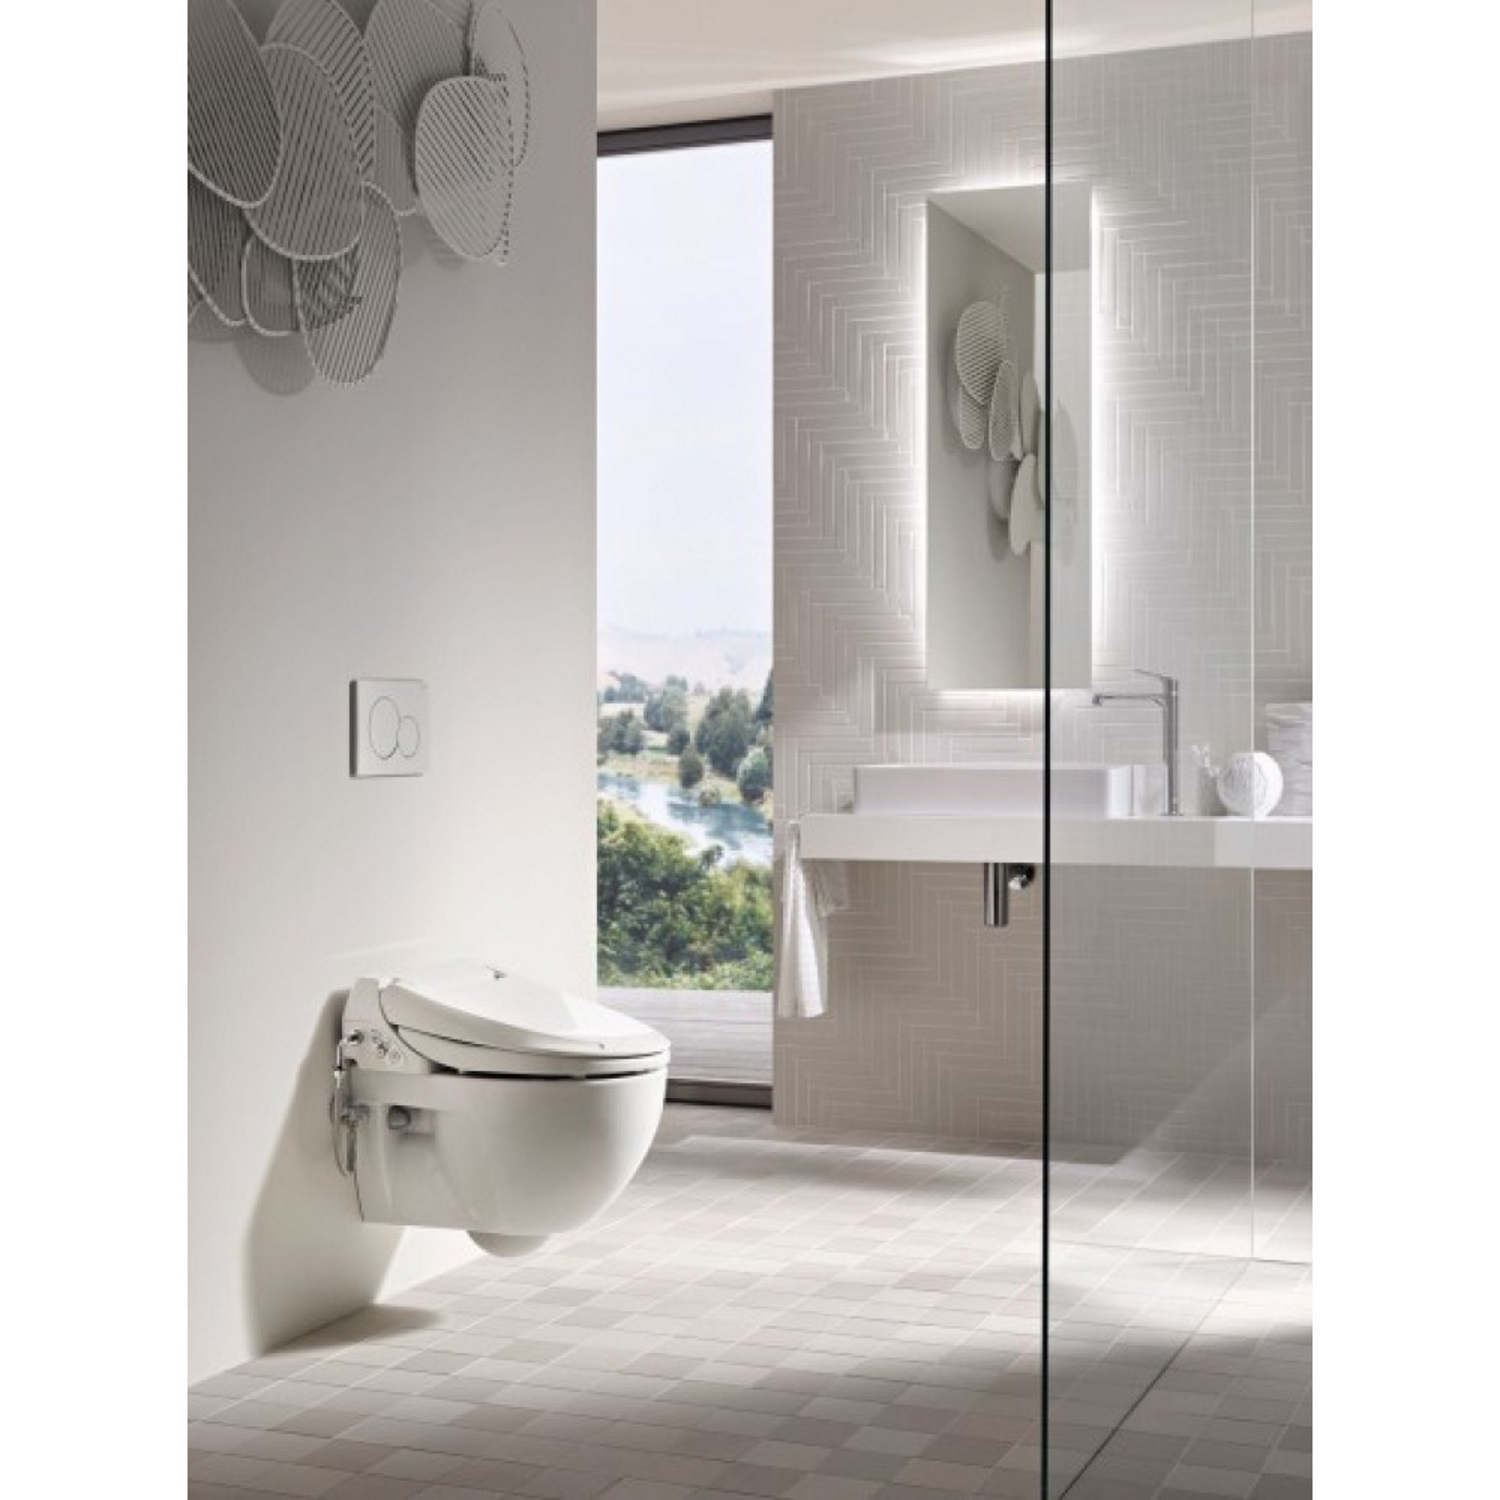 geberit aquaclean 4000 douche wc met closet model 1 wateraansl wit 146135111. Black Bedroom Furniture Sets. Home Design Ideas